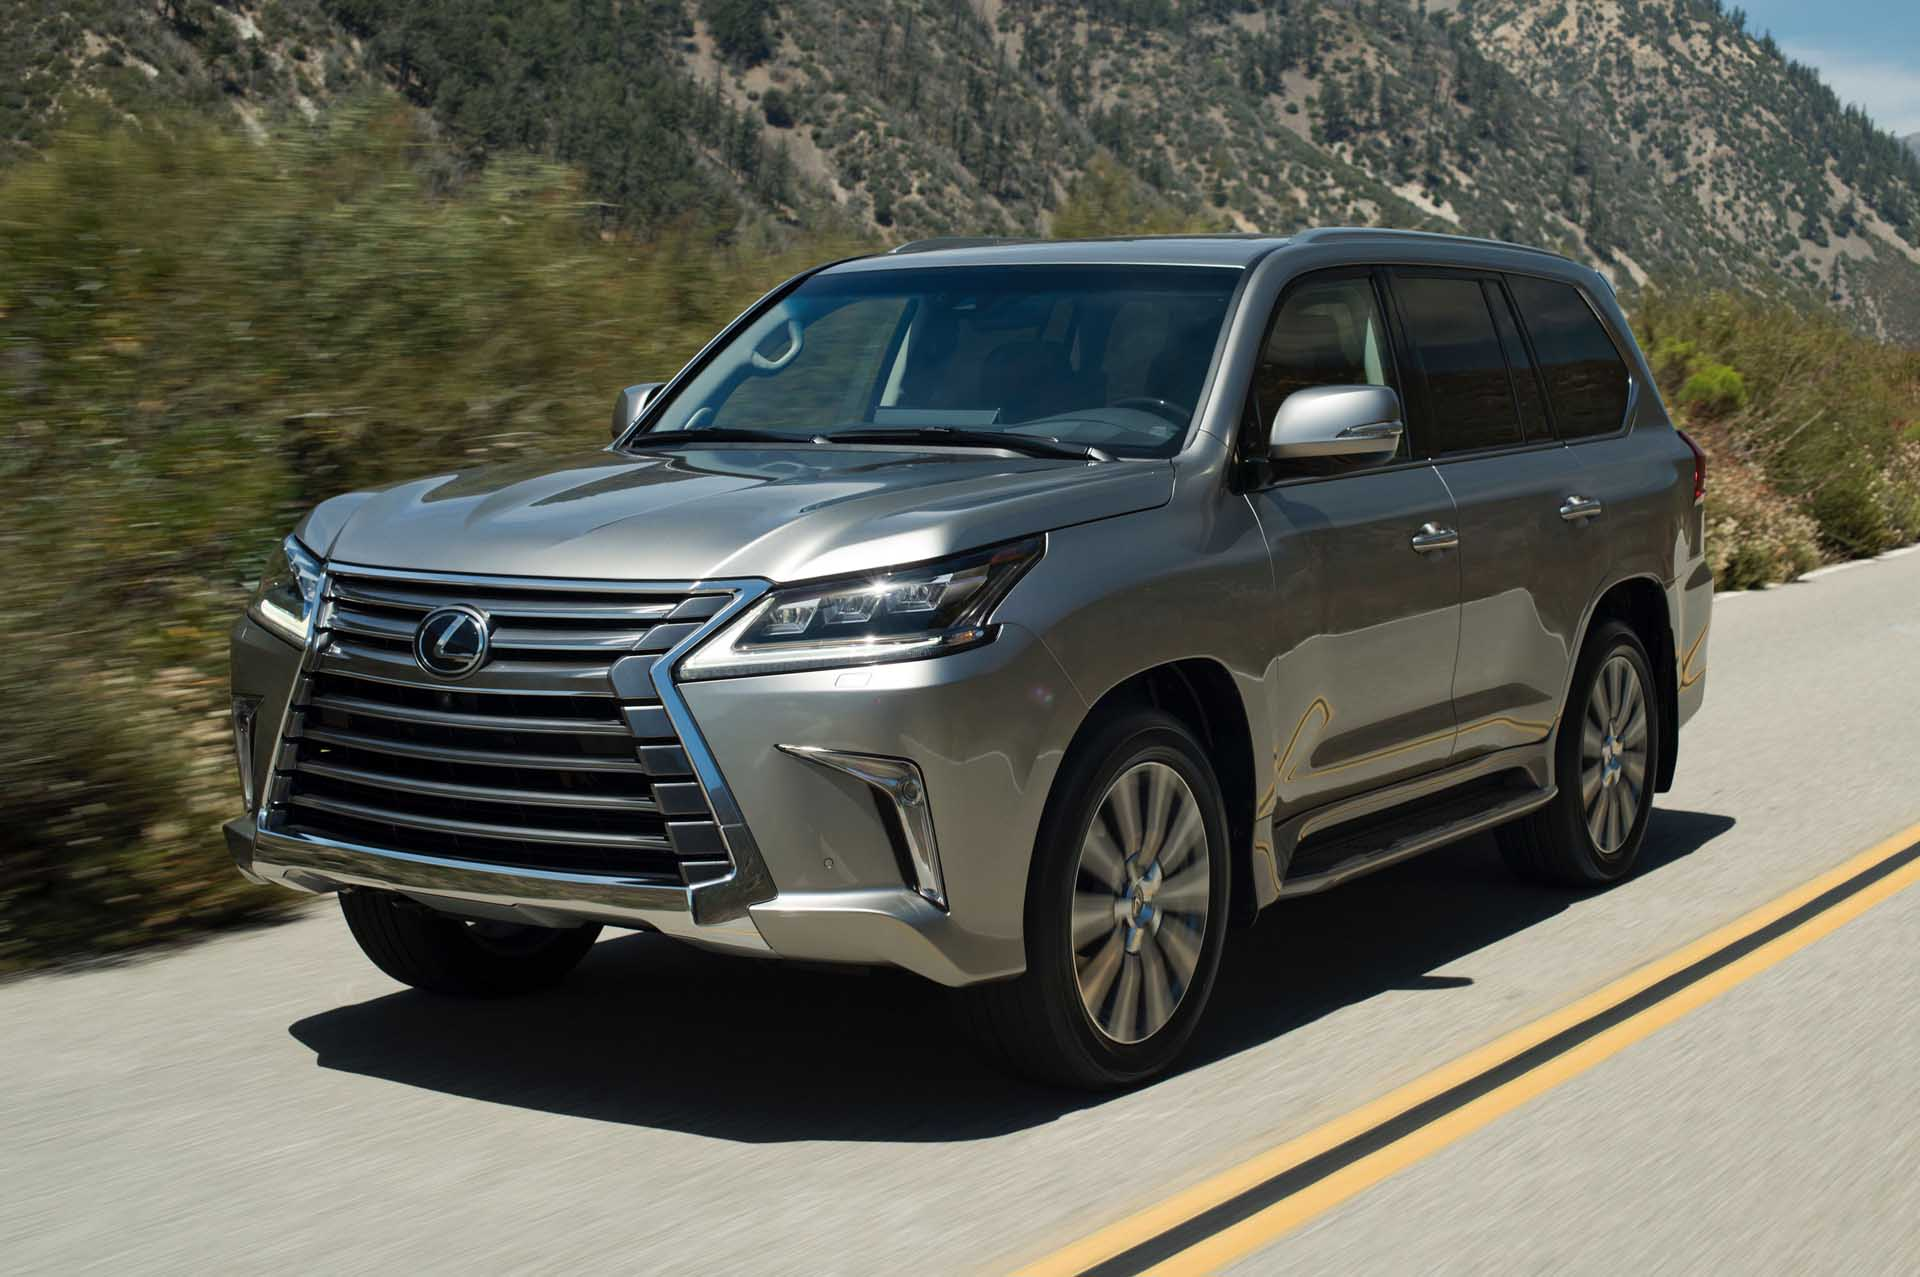 2020 Lexus Lx Review Ratings Specs Prices And Photos The Car Connection